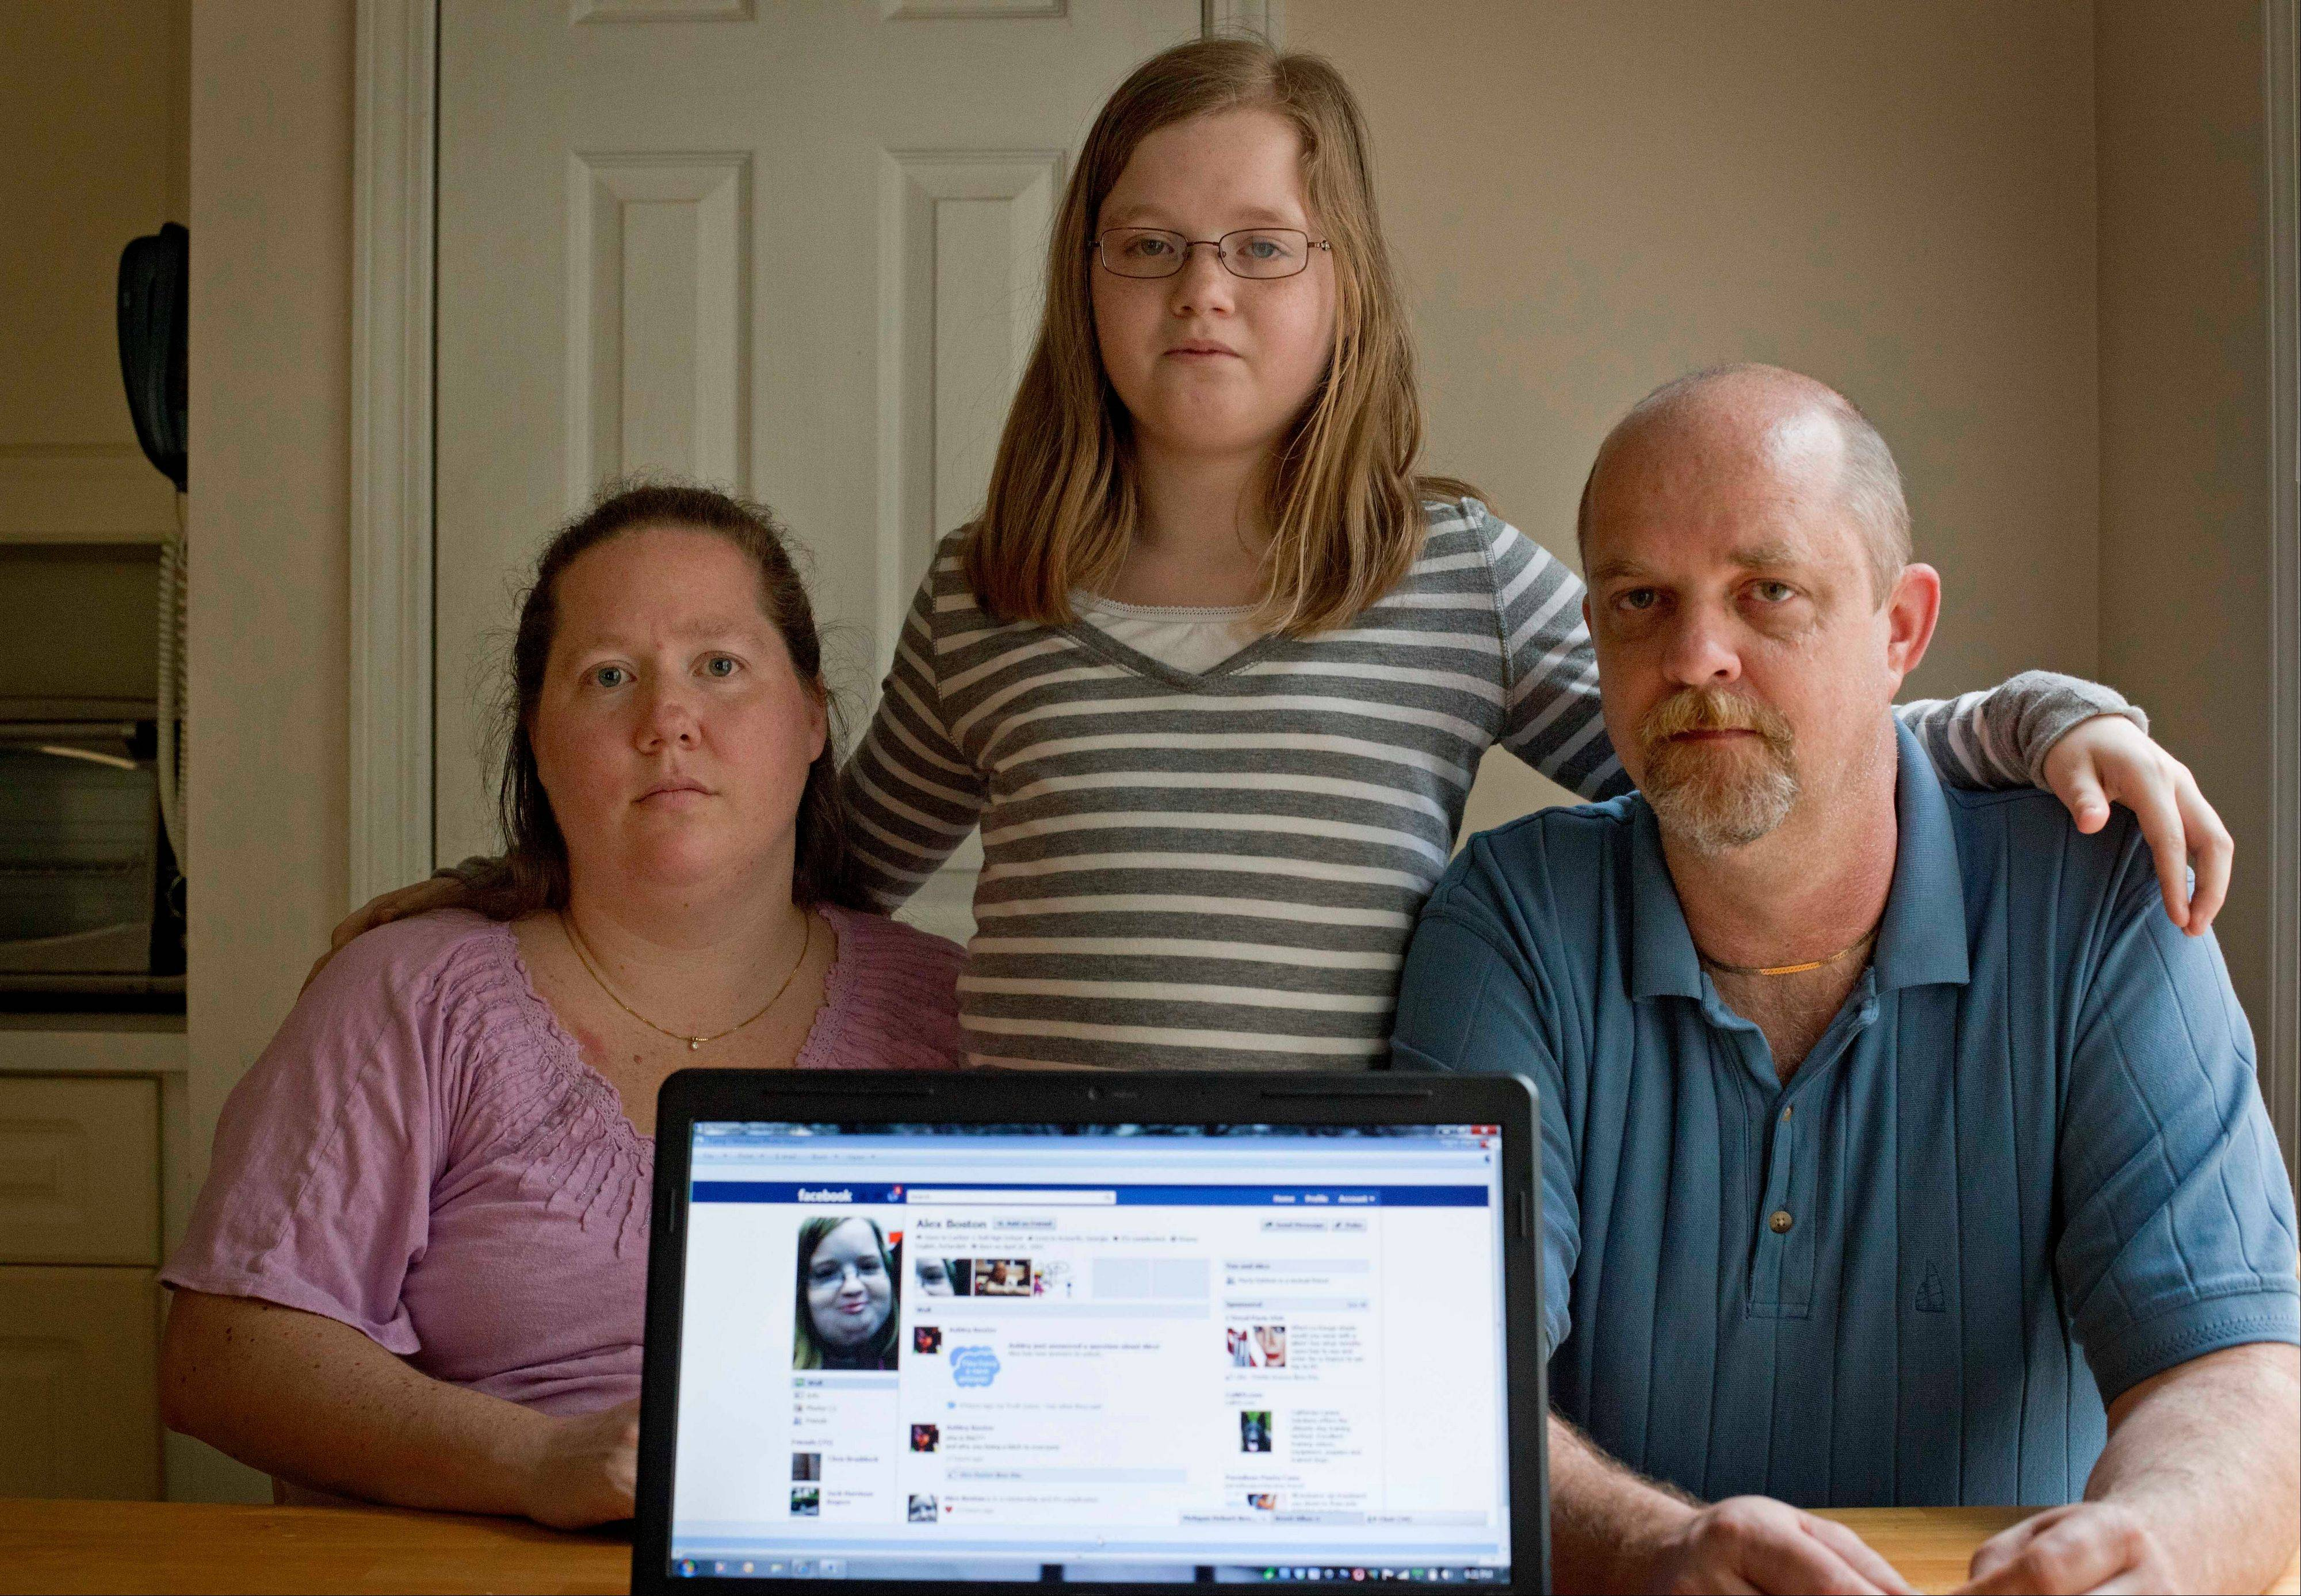 Pictures of cyberbullying victims